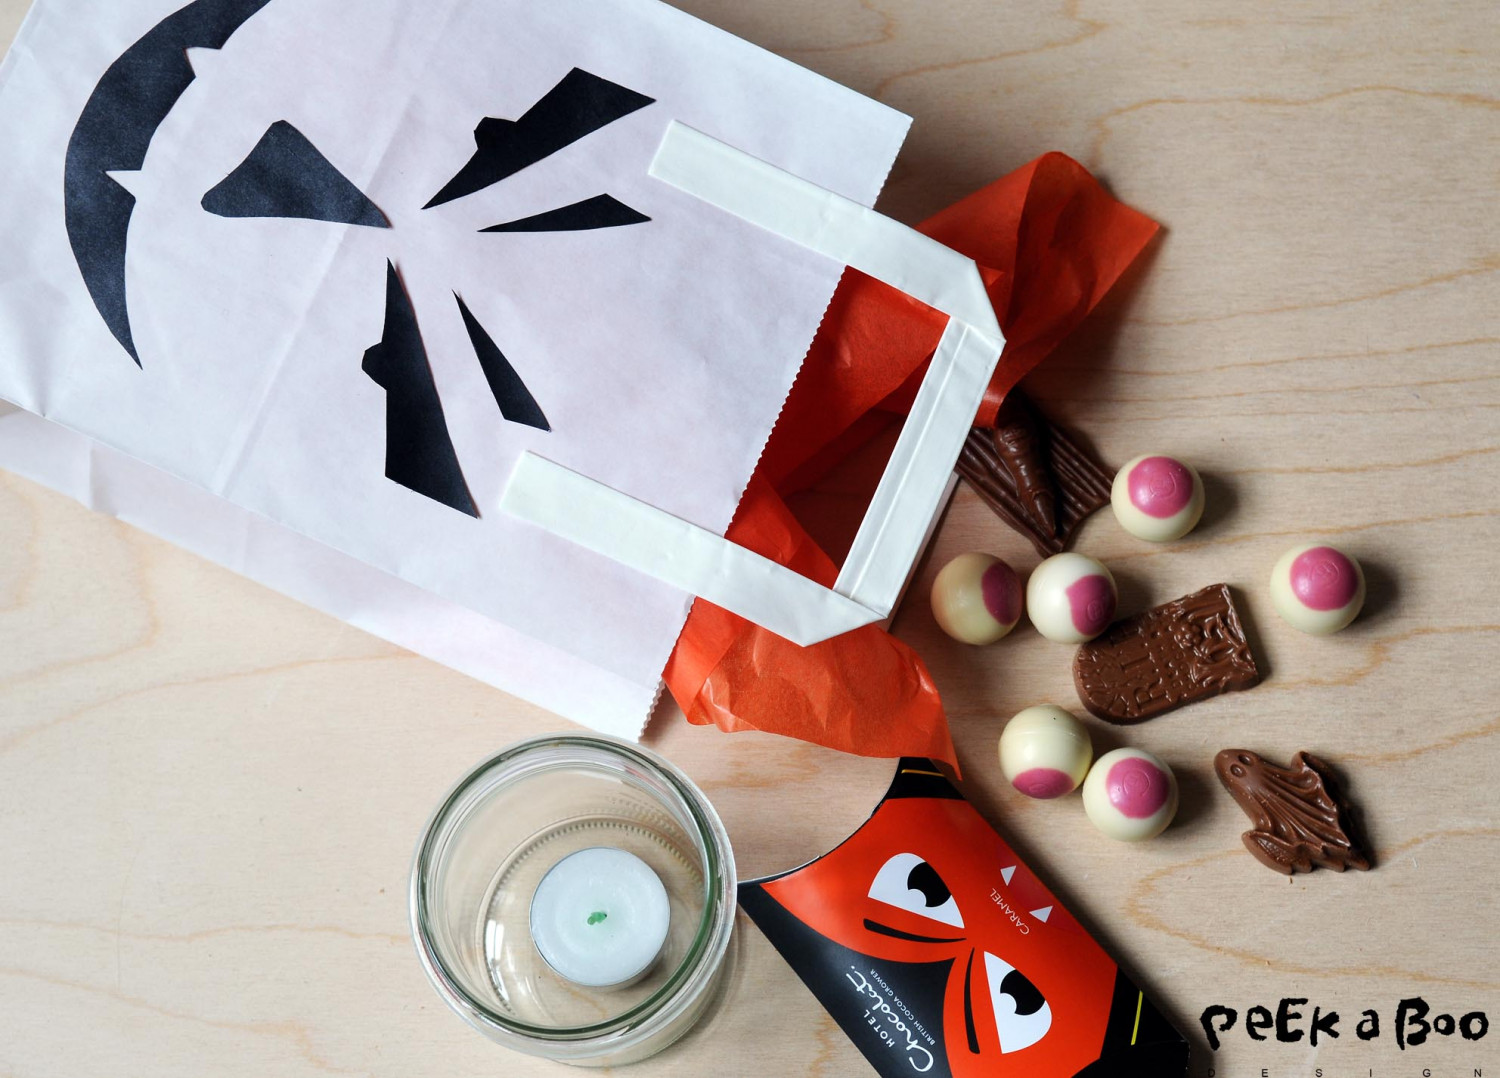 Fill the candybag with the scary chocolate from Hotel Chocolat and a glass and tealight, and the kids will be trilled to get this bag.